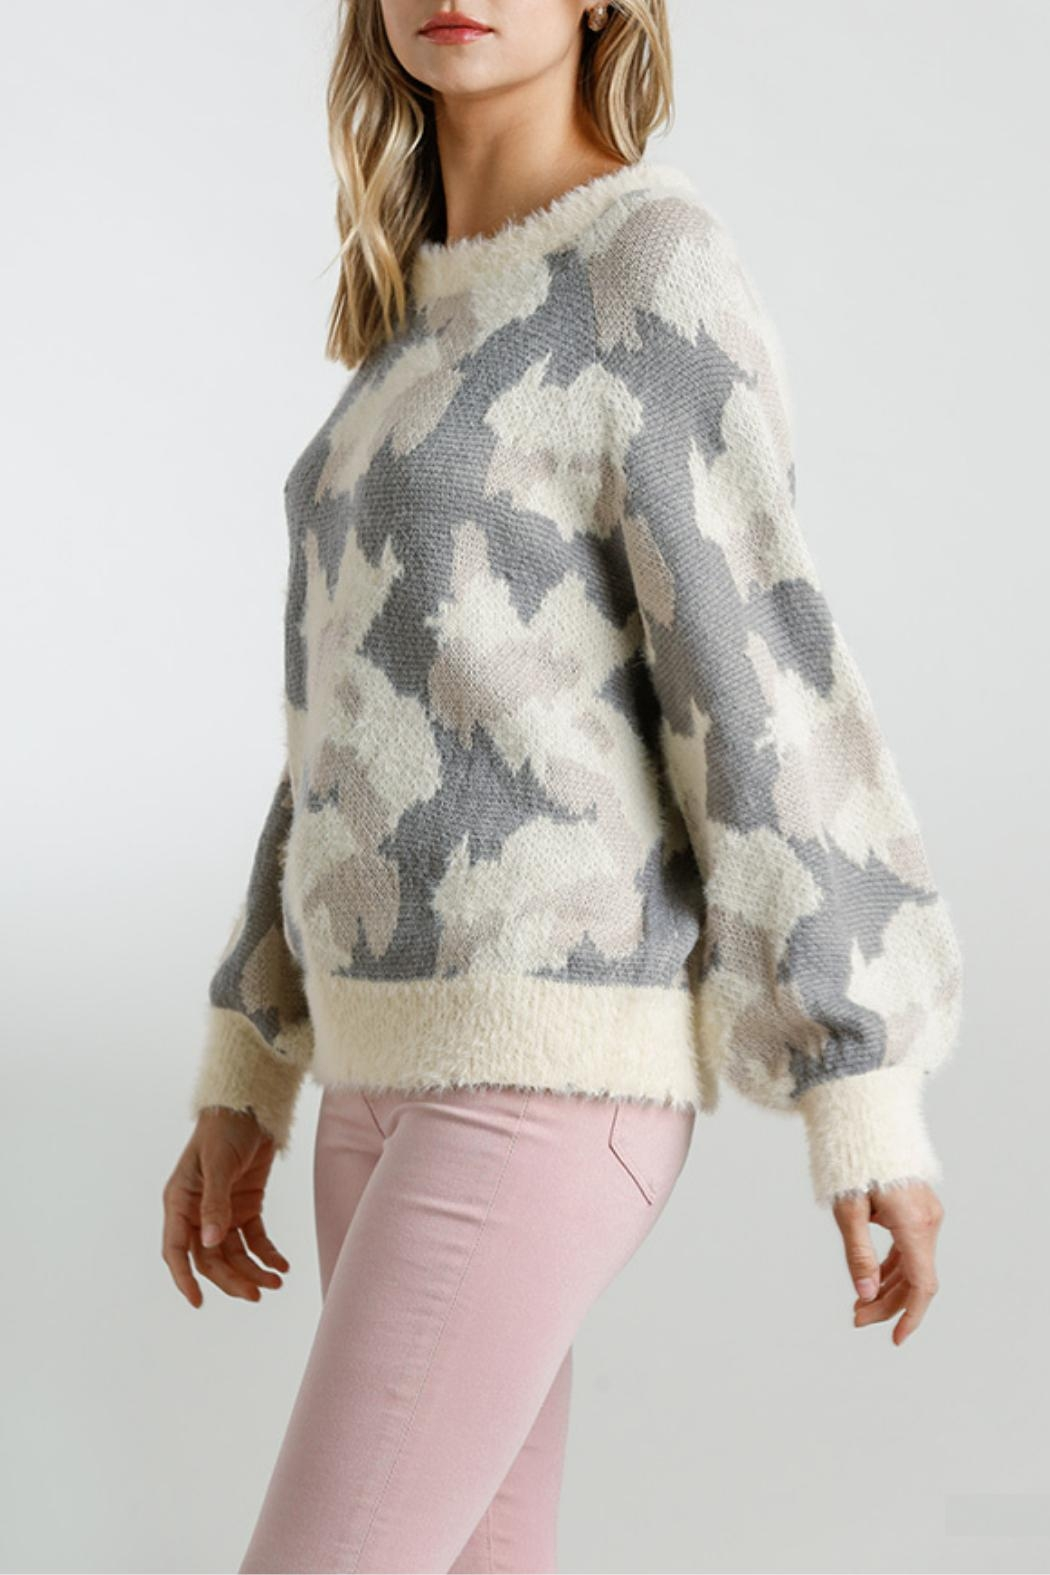 Umgee USA Fuzzy-Knit Camo Sweater - Front Full Image